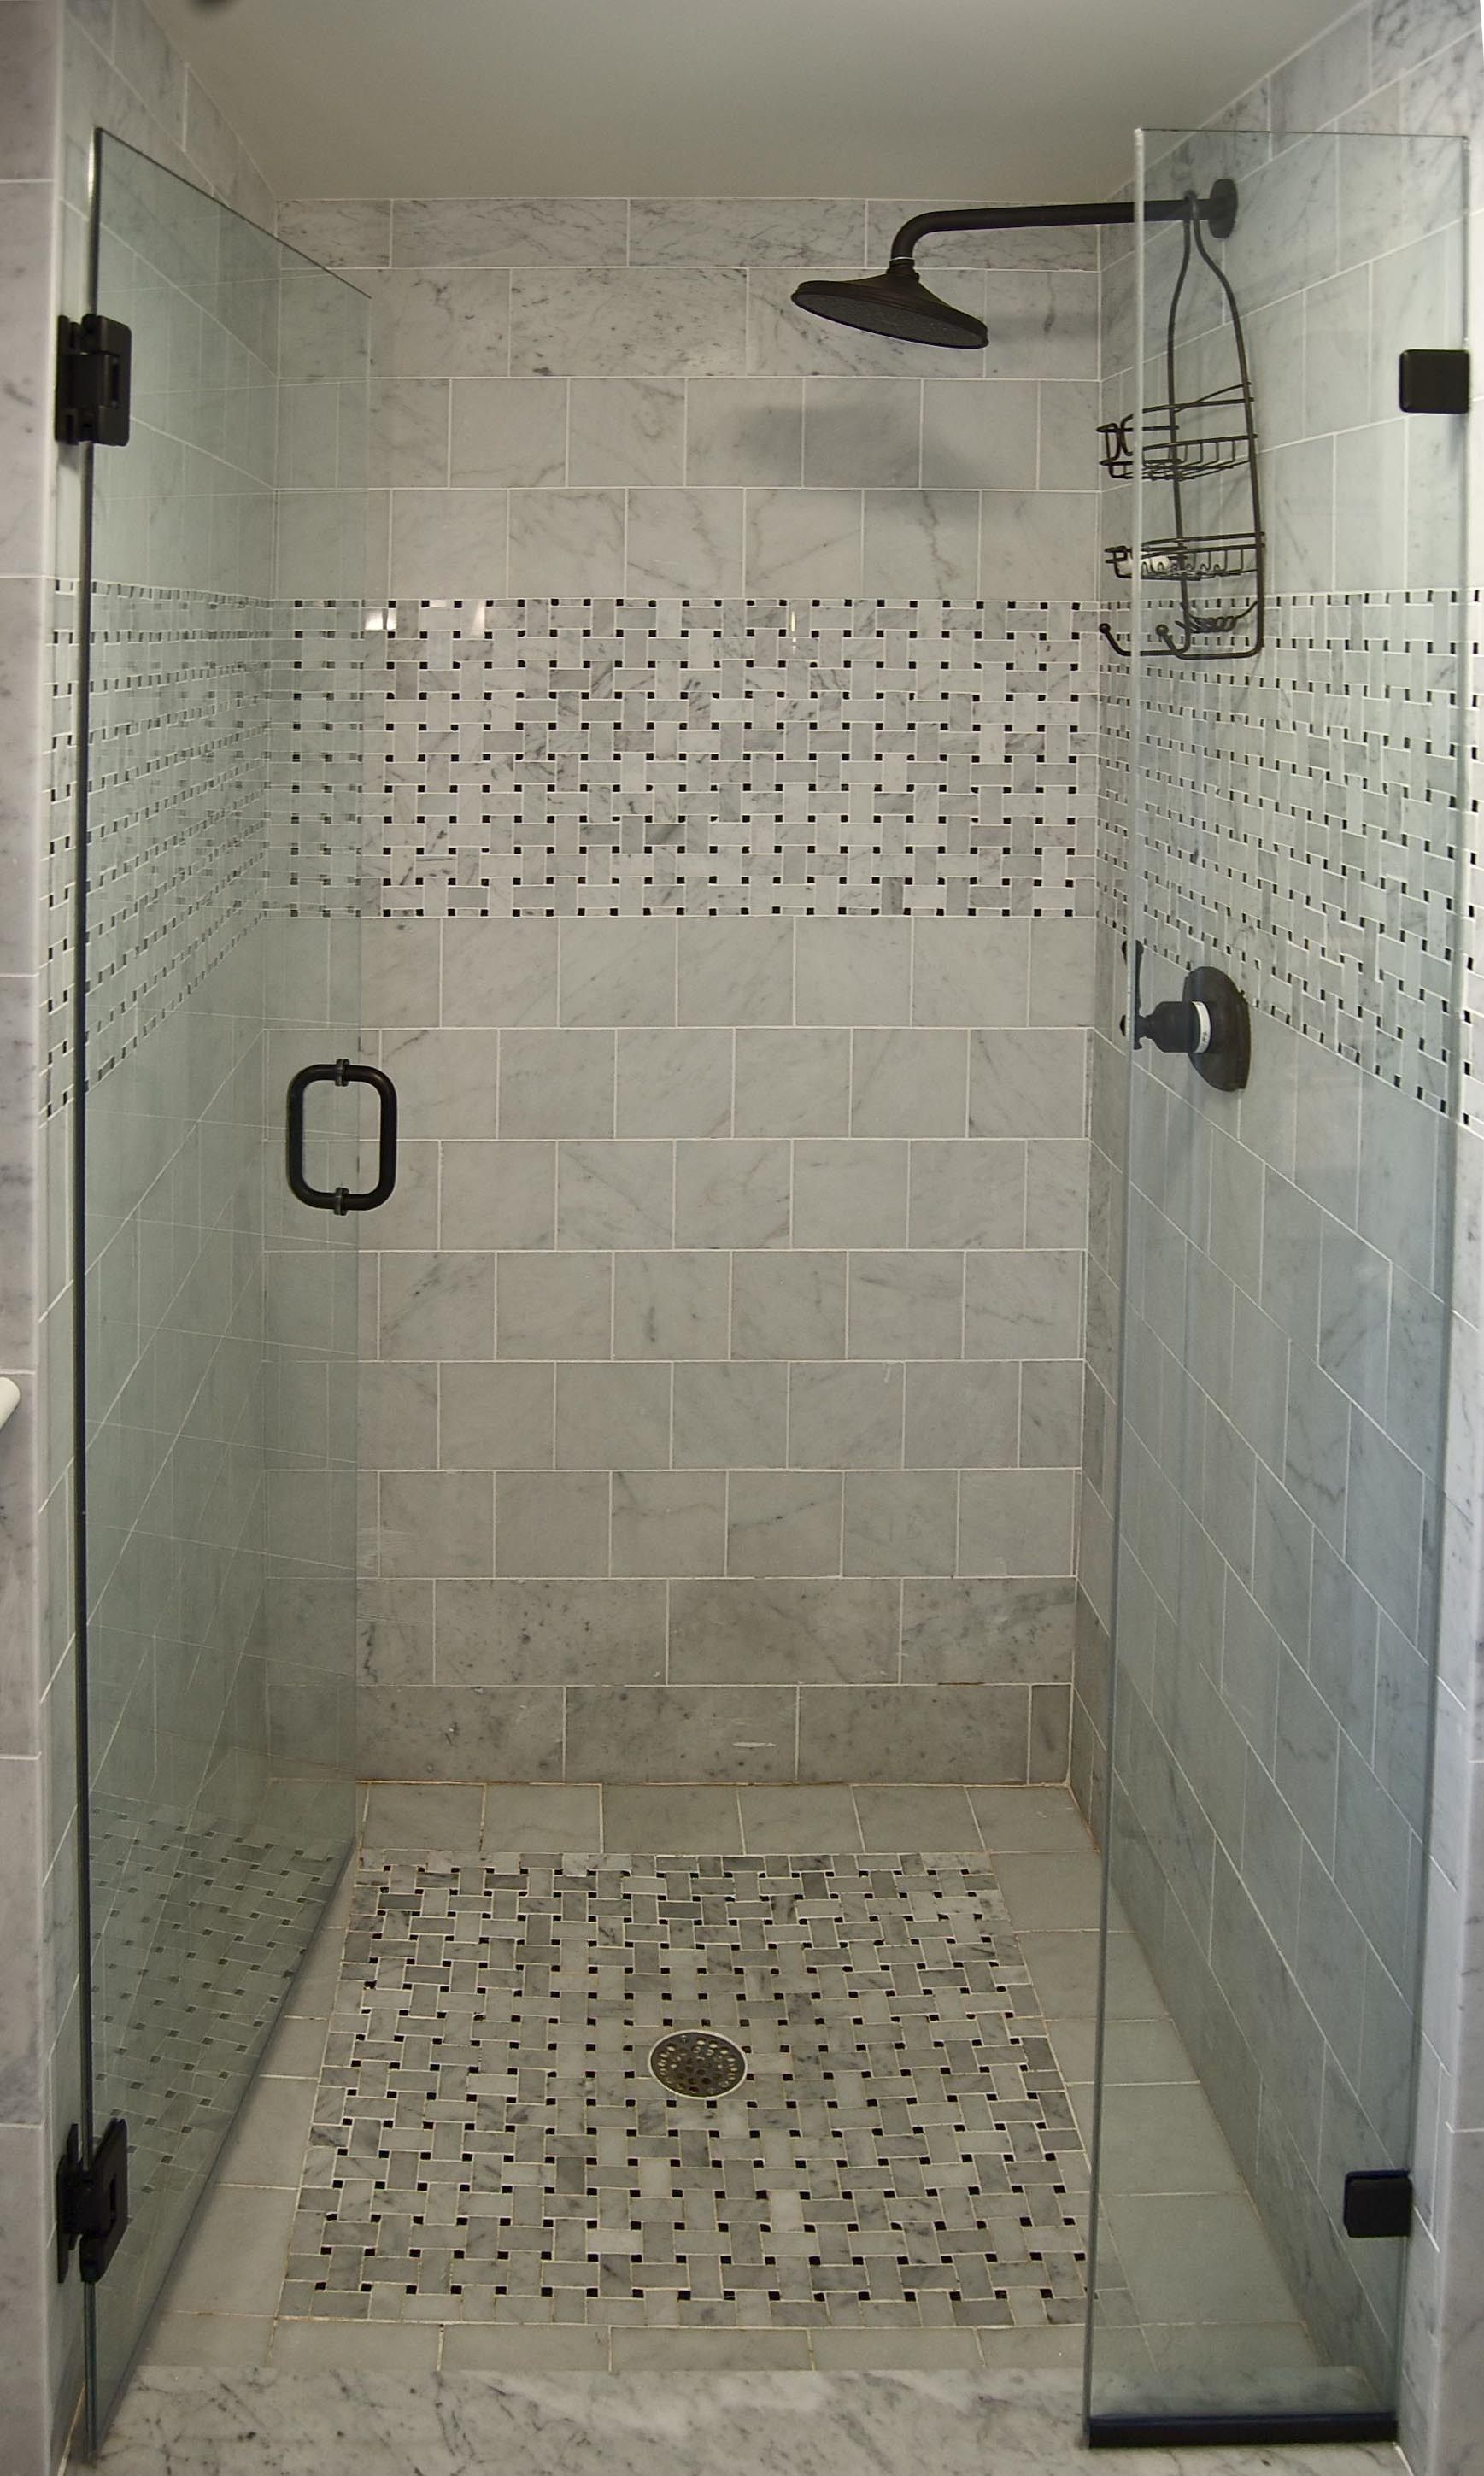 30 Shower tile ideas on a budget | Bathroom shower stalls